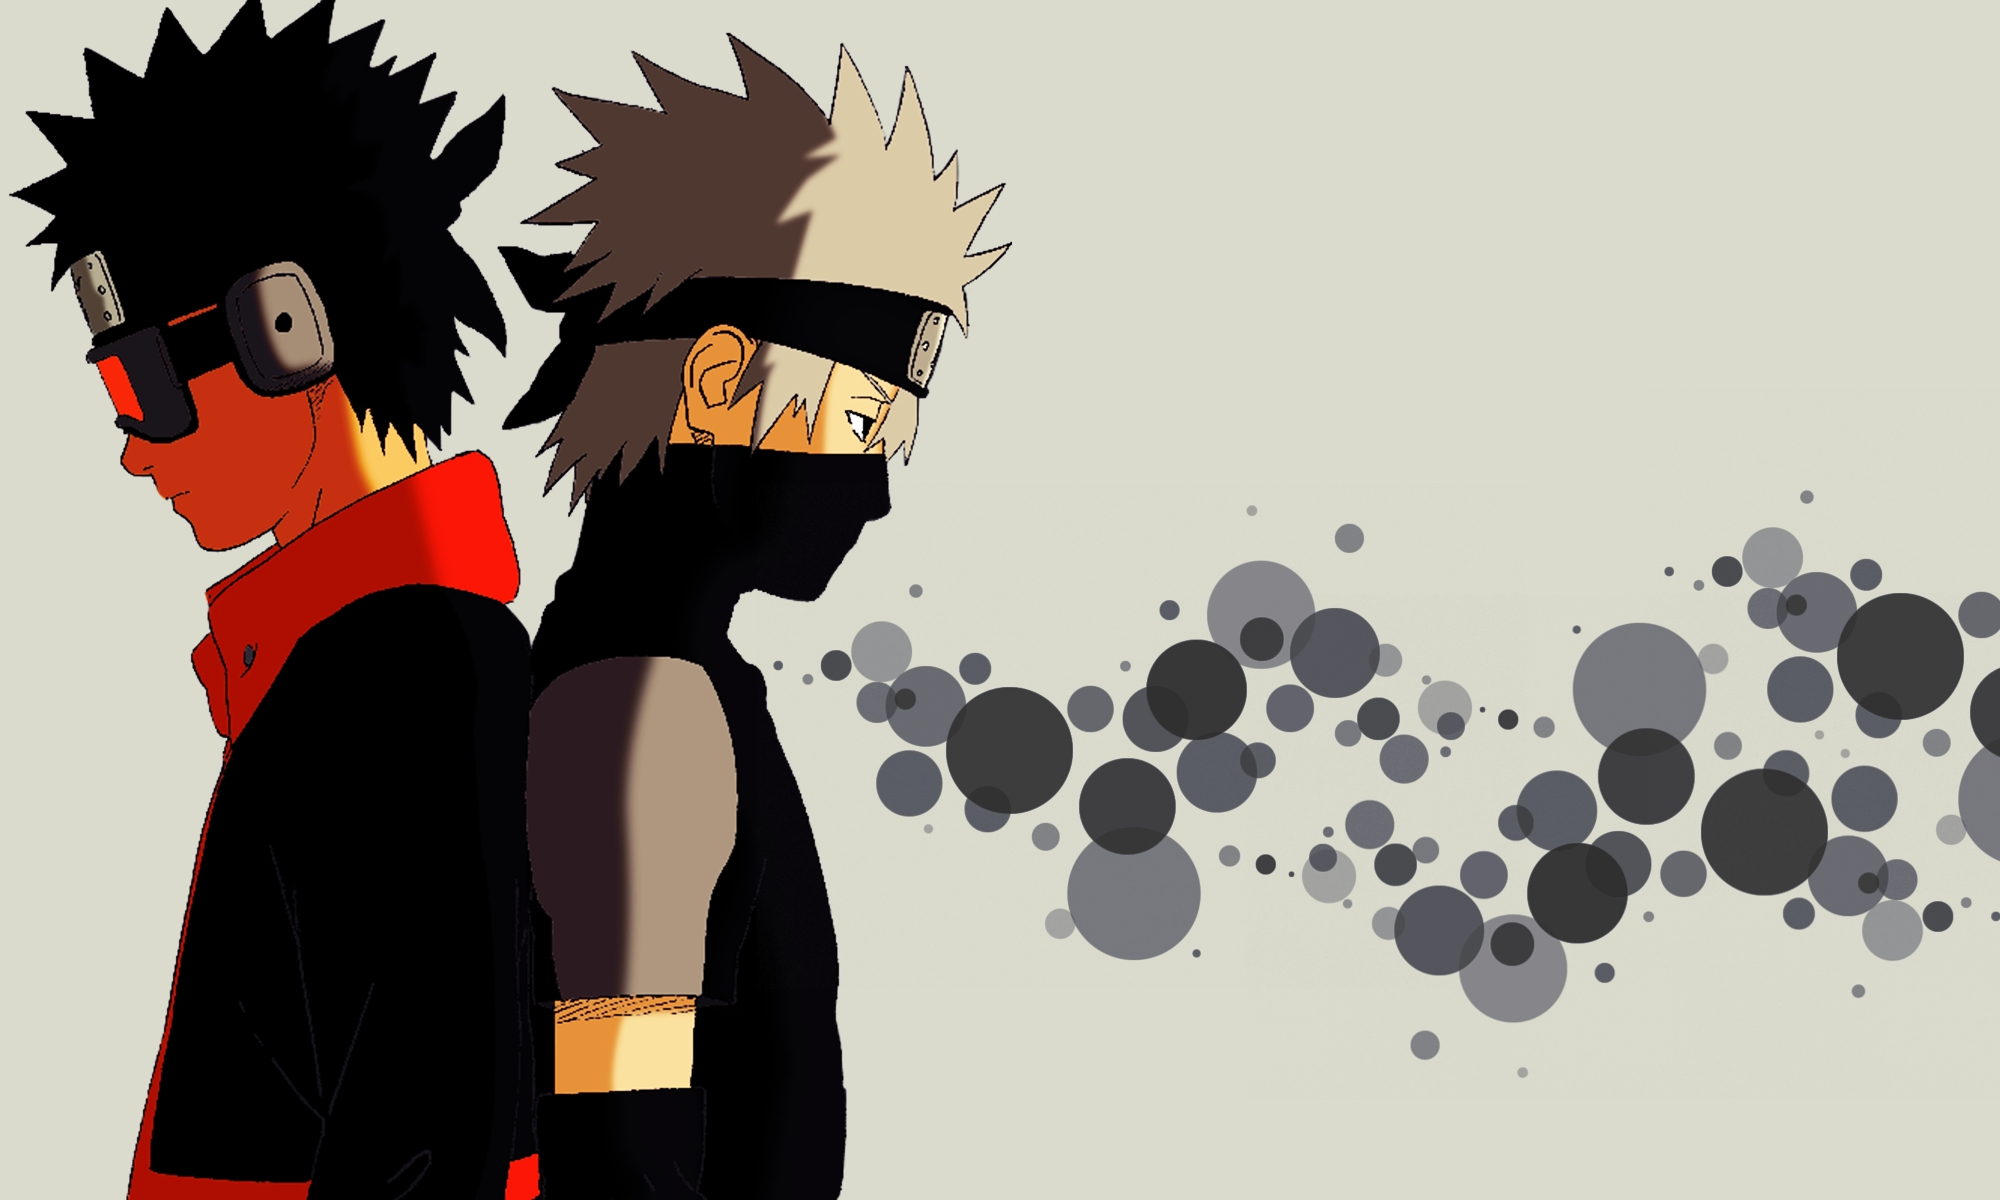 obito uchiha and kakashi hatake obito uchiha wallpaper